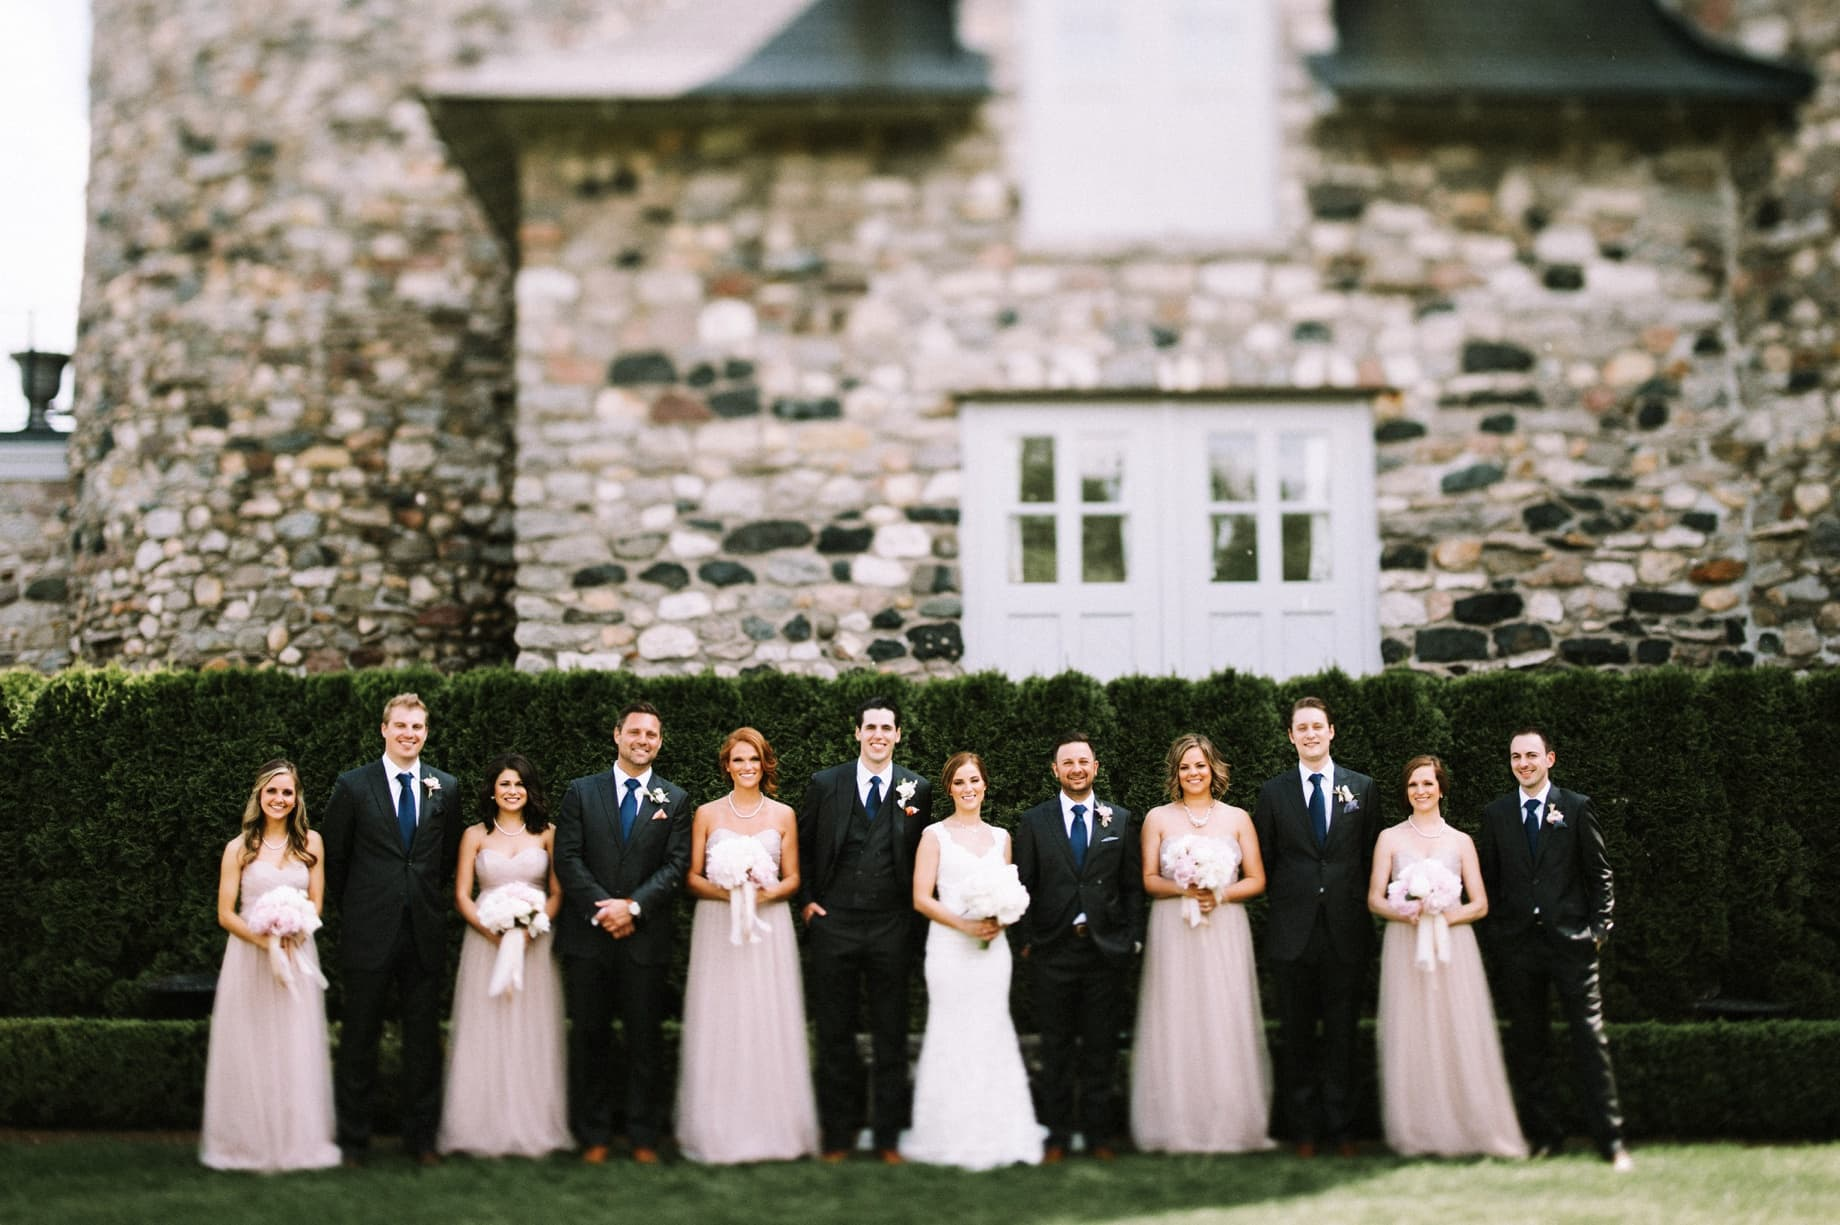 wedding party in peach and gray